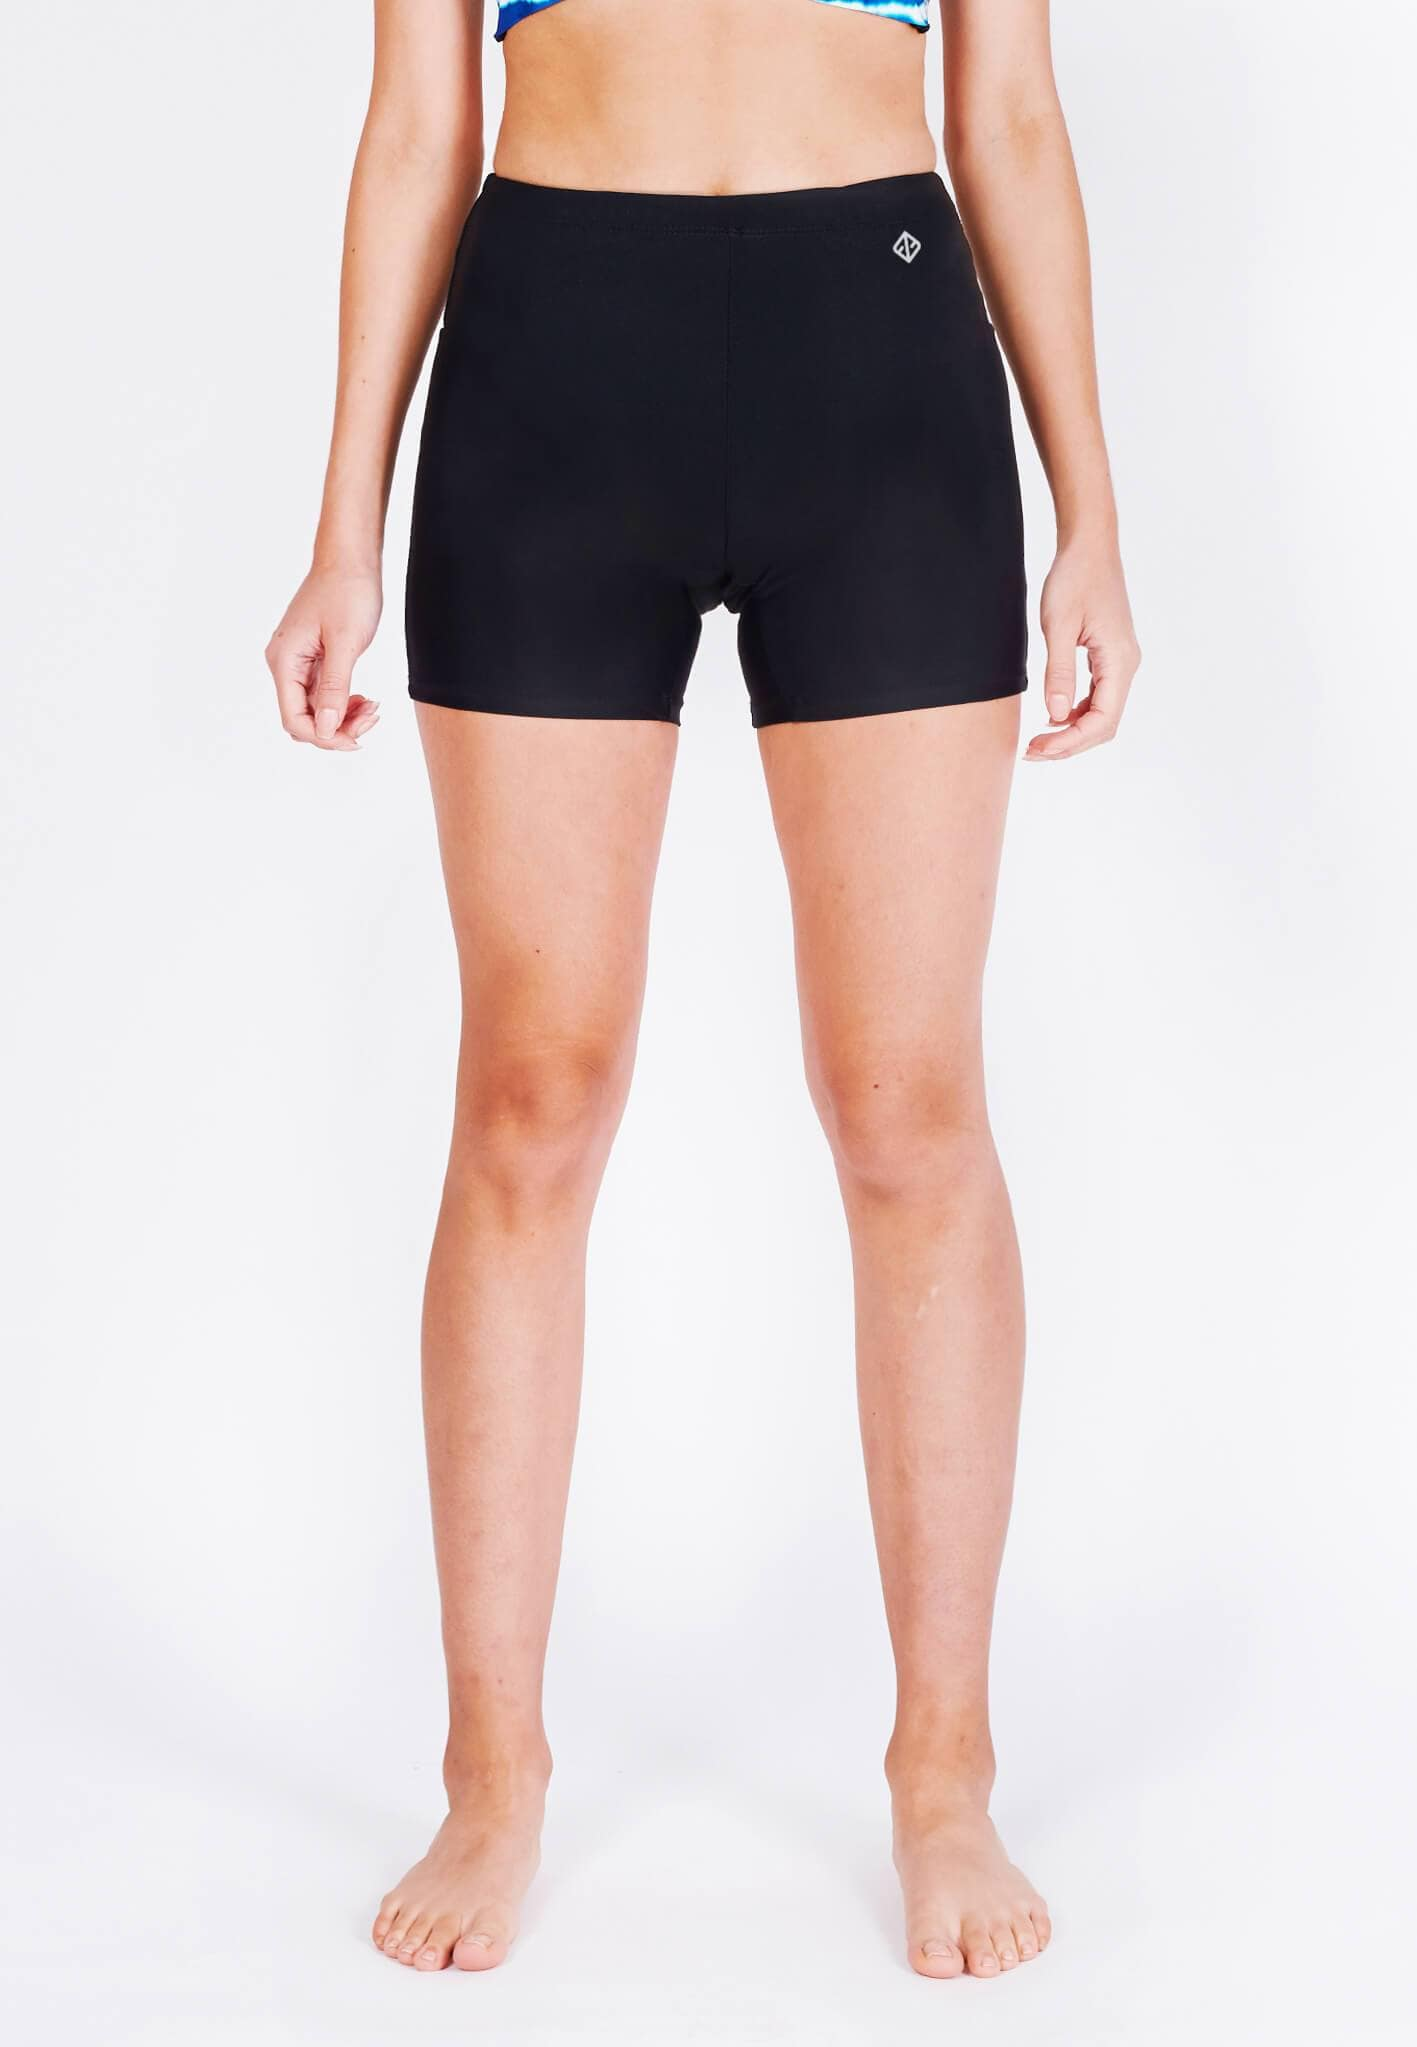 Basic Bike Shorts (Front Logo) in Black (S - L) - FUNFIT